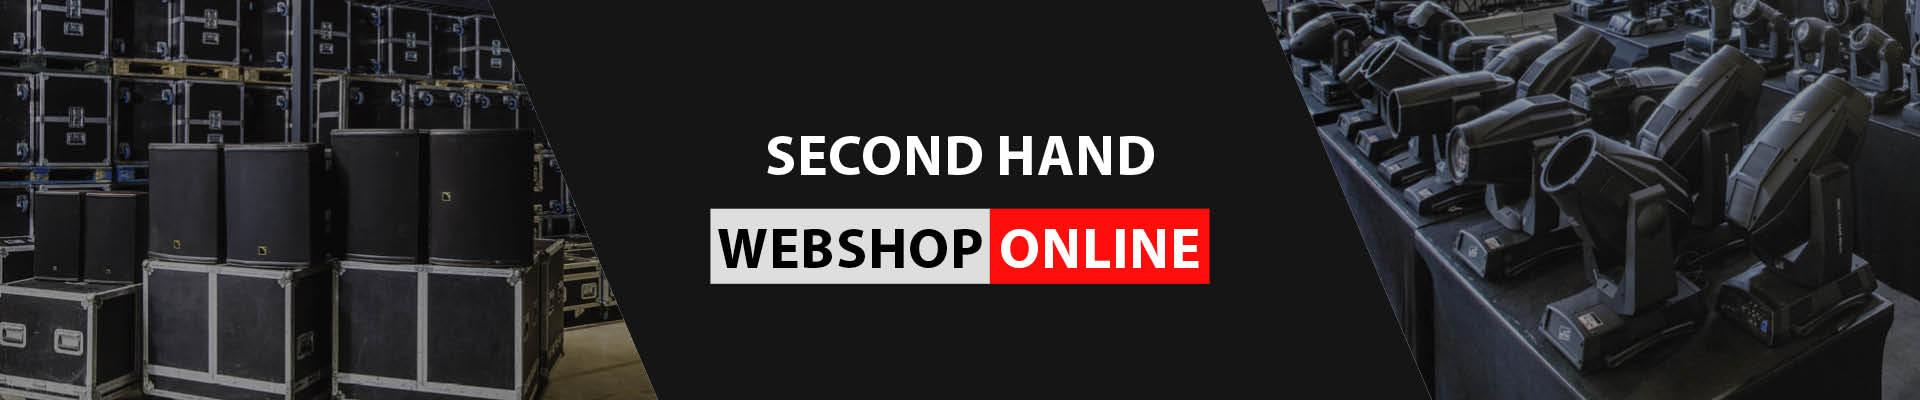 AED Second Hand Webshop